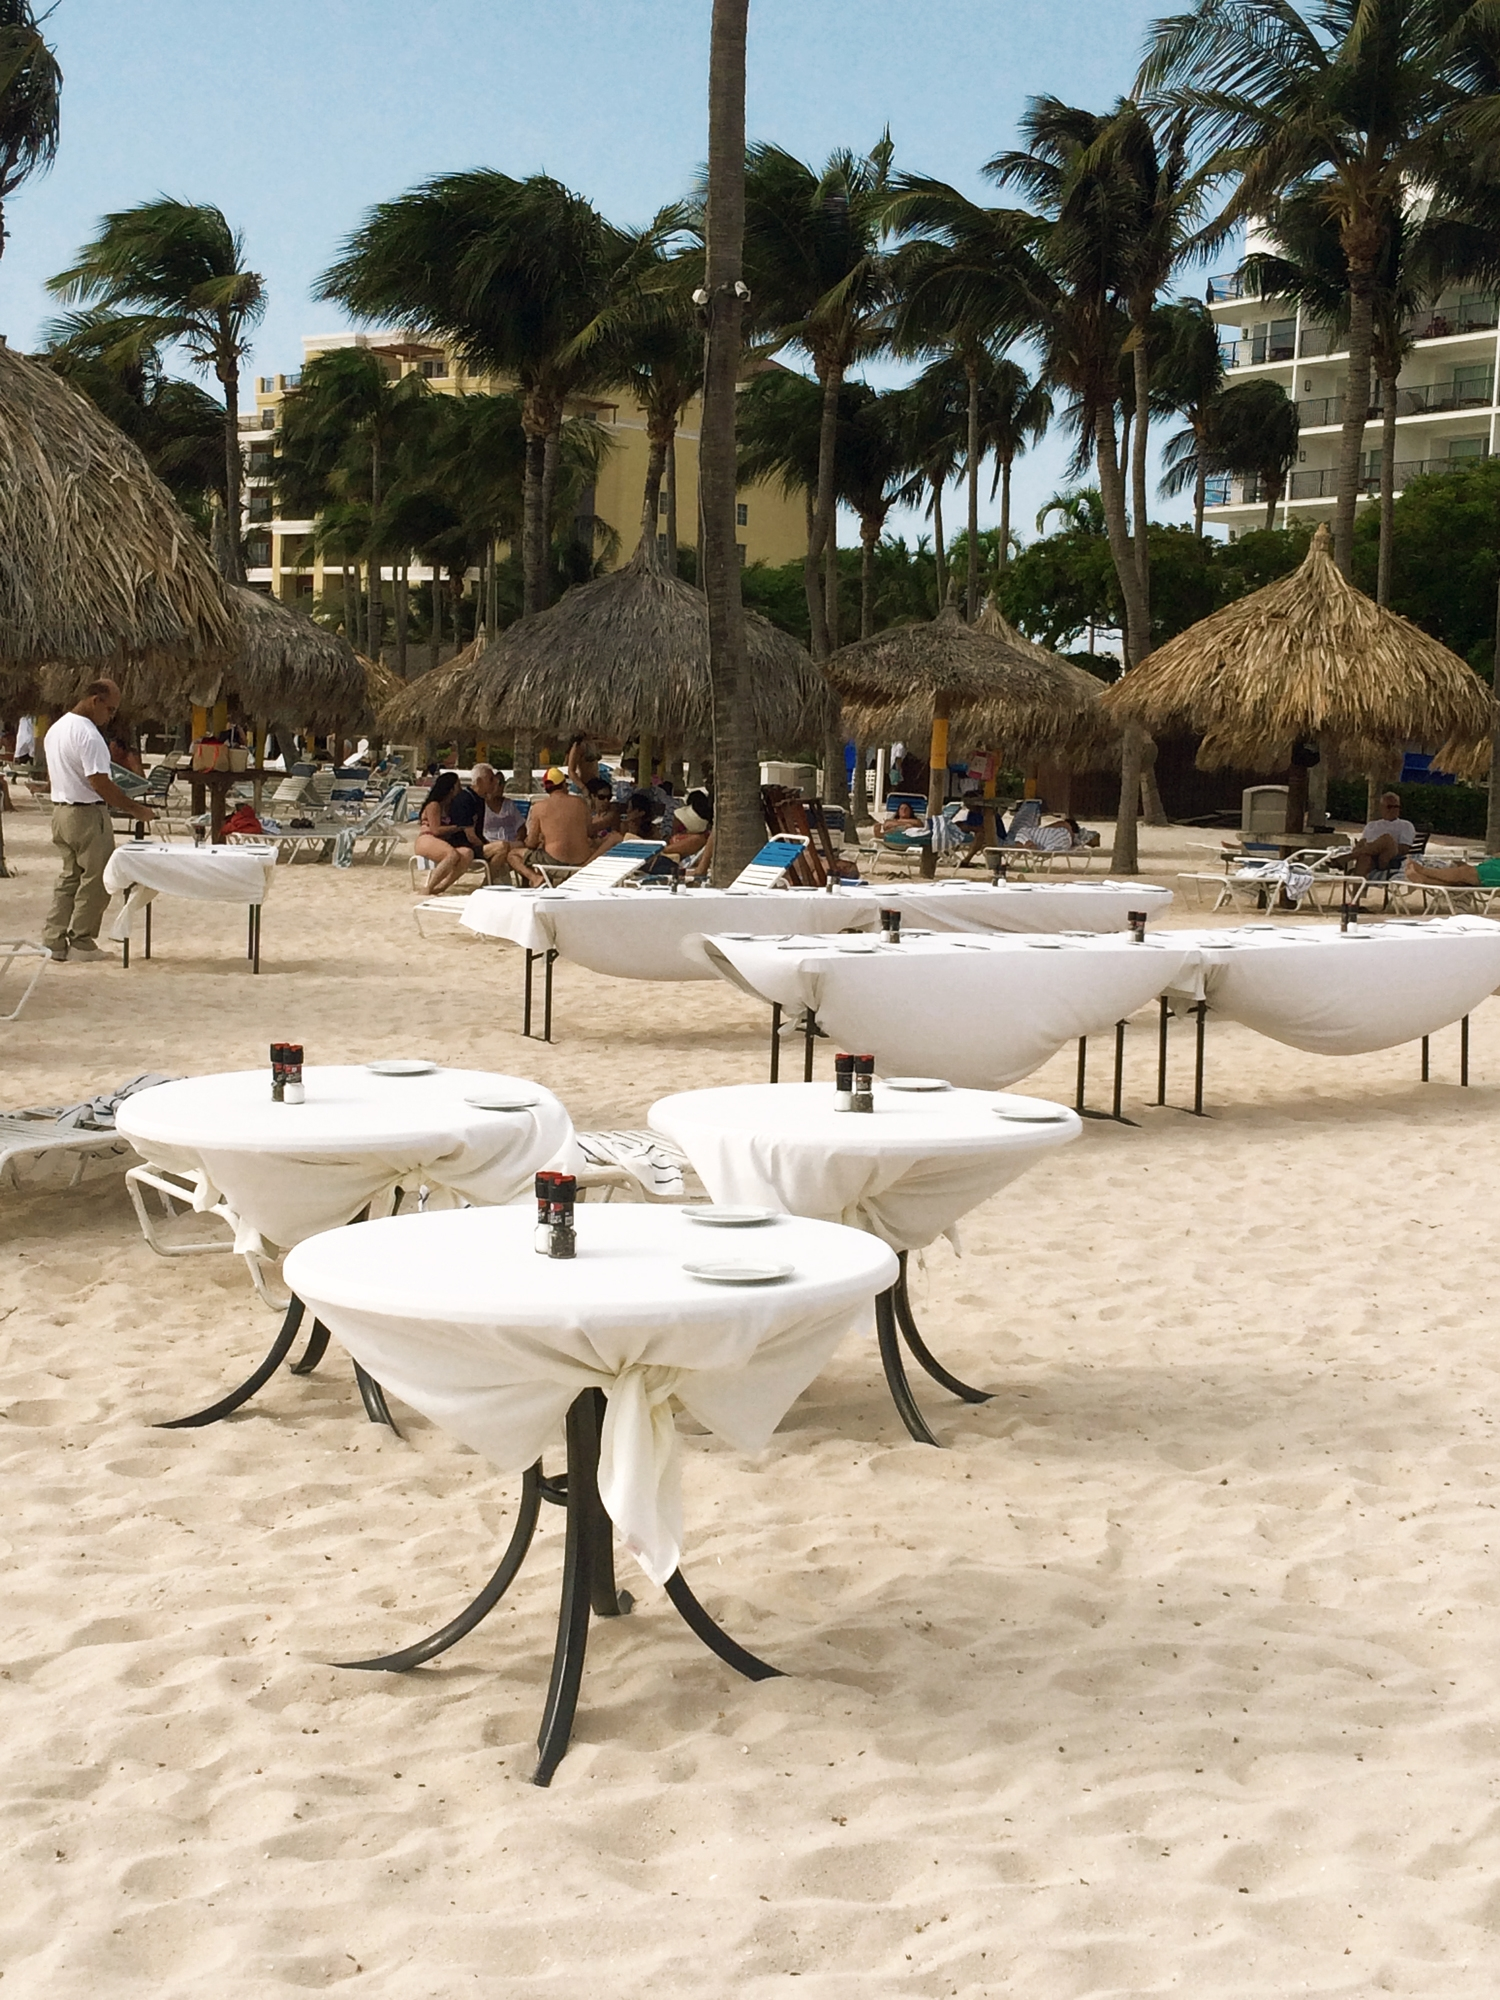 During the evening hours, the Marriotts restruants set up tables along the shore